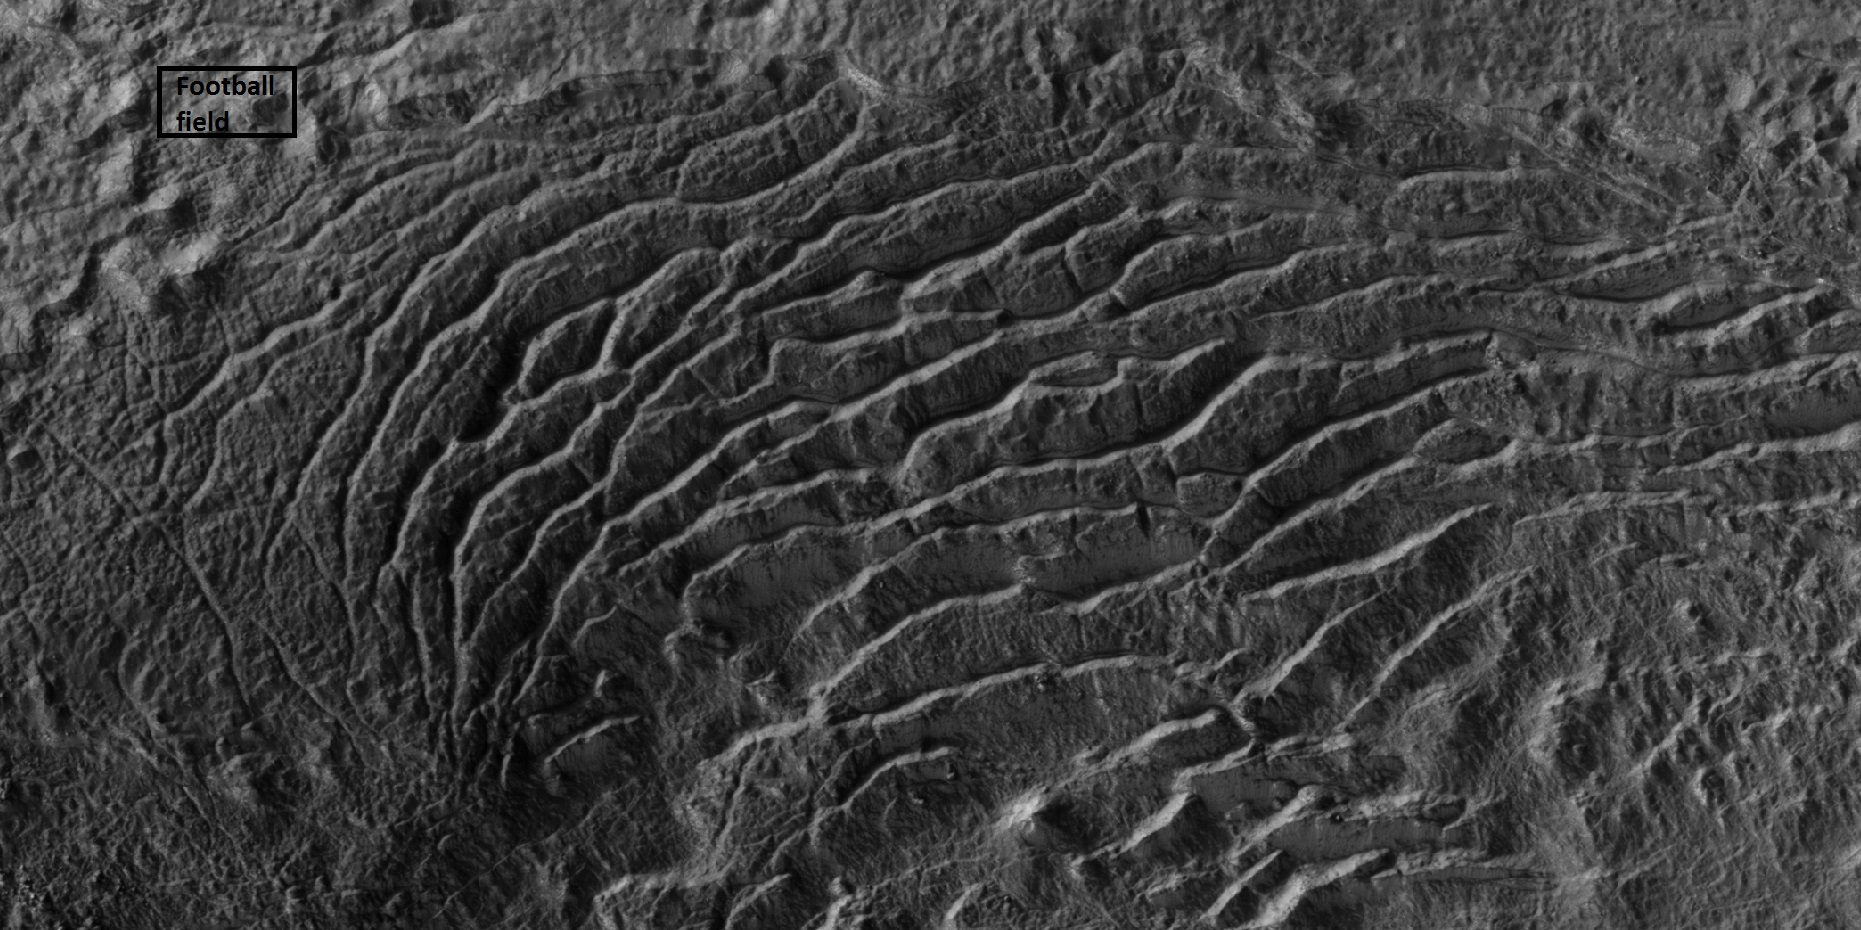 Ridges forming from cracks Box in upper left shows size of football field. Just imagine trying to hike across such a landscape.